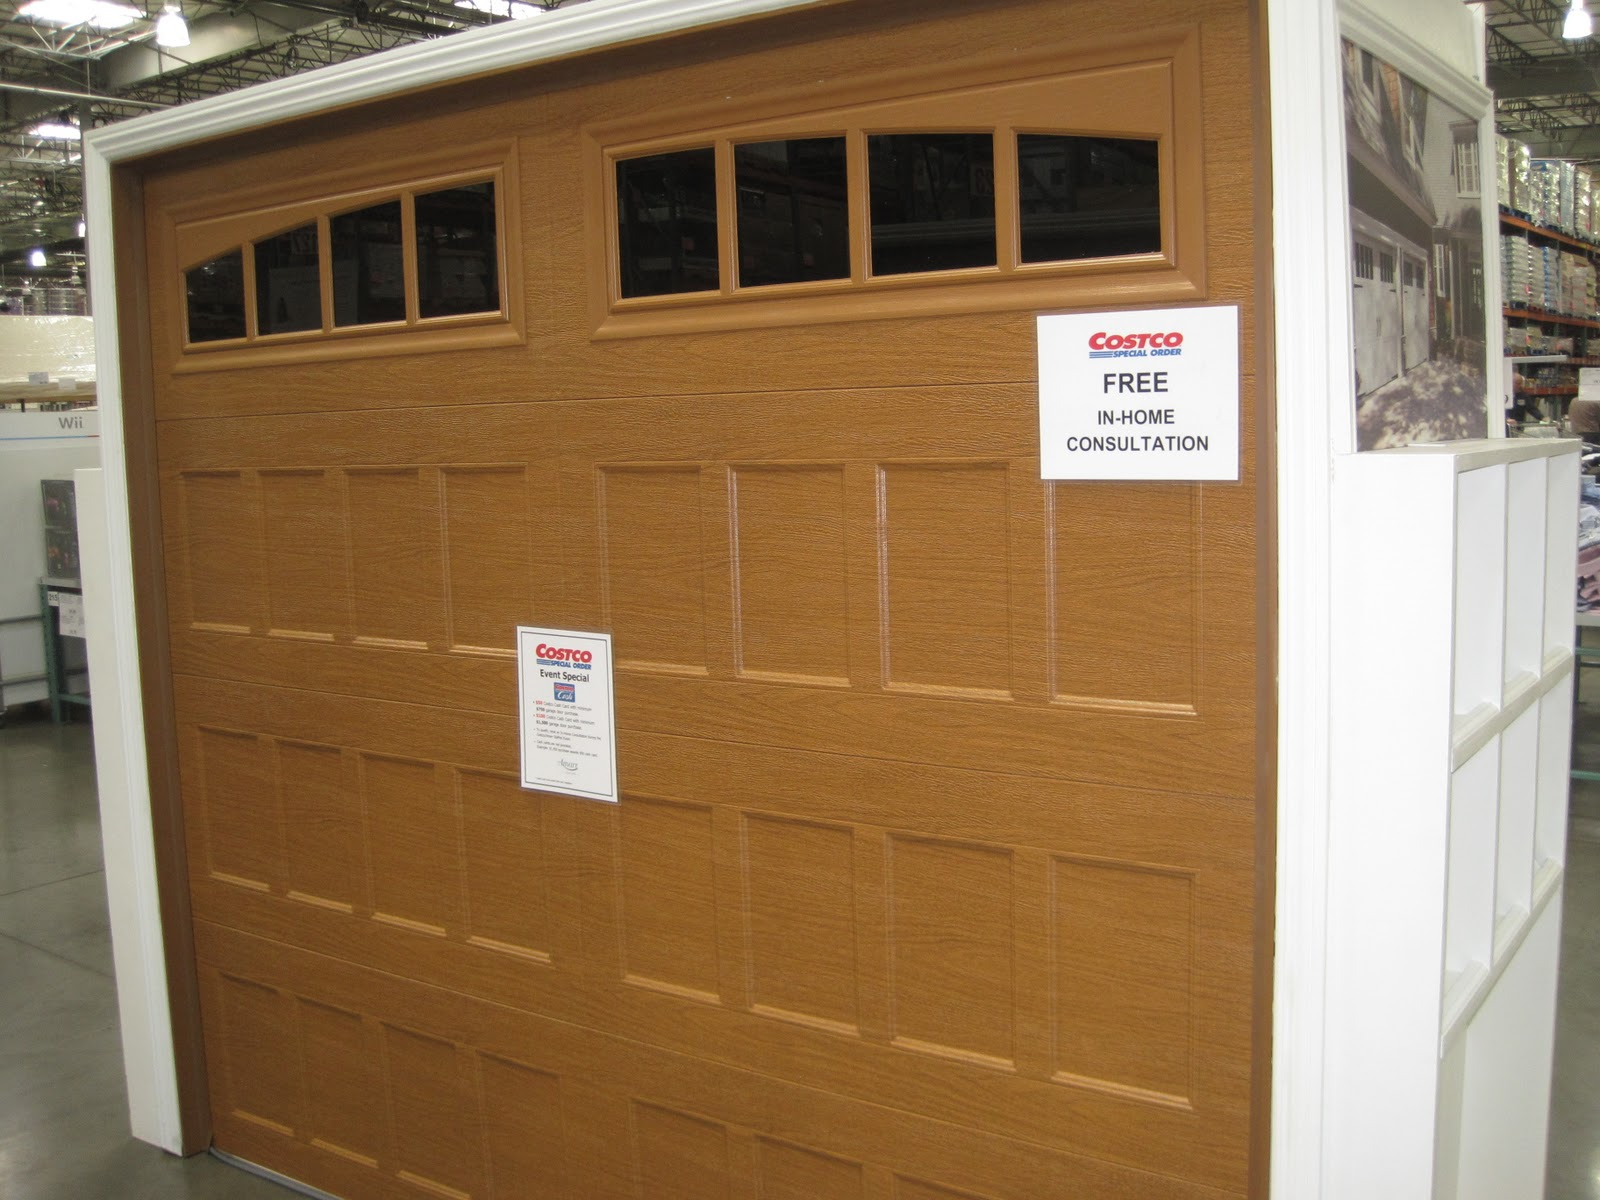 1200 #704A24 Garage Doors Unlimited: Garage Door Road Show At Costco! pic Garage Doors At Costco 36911600